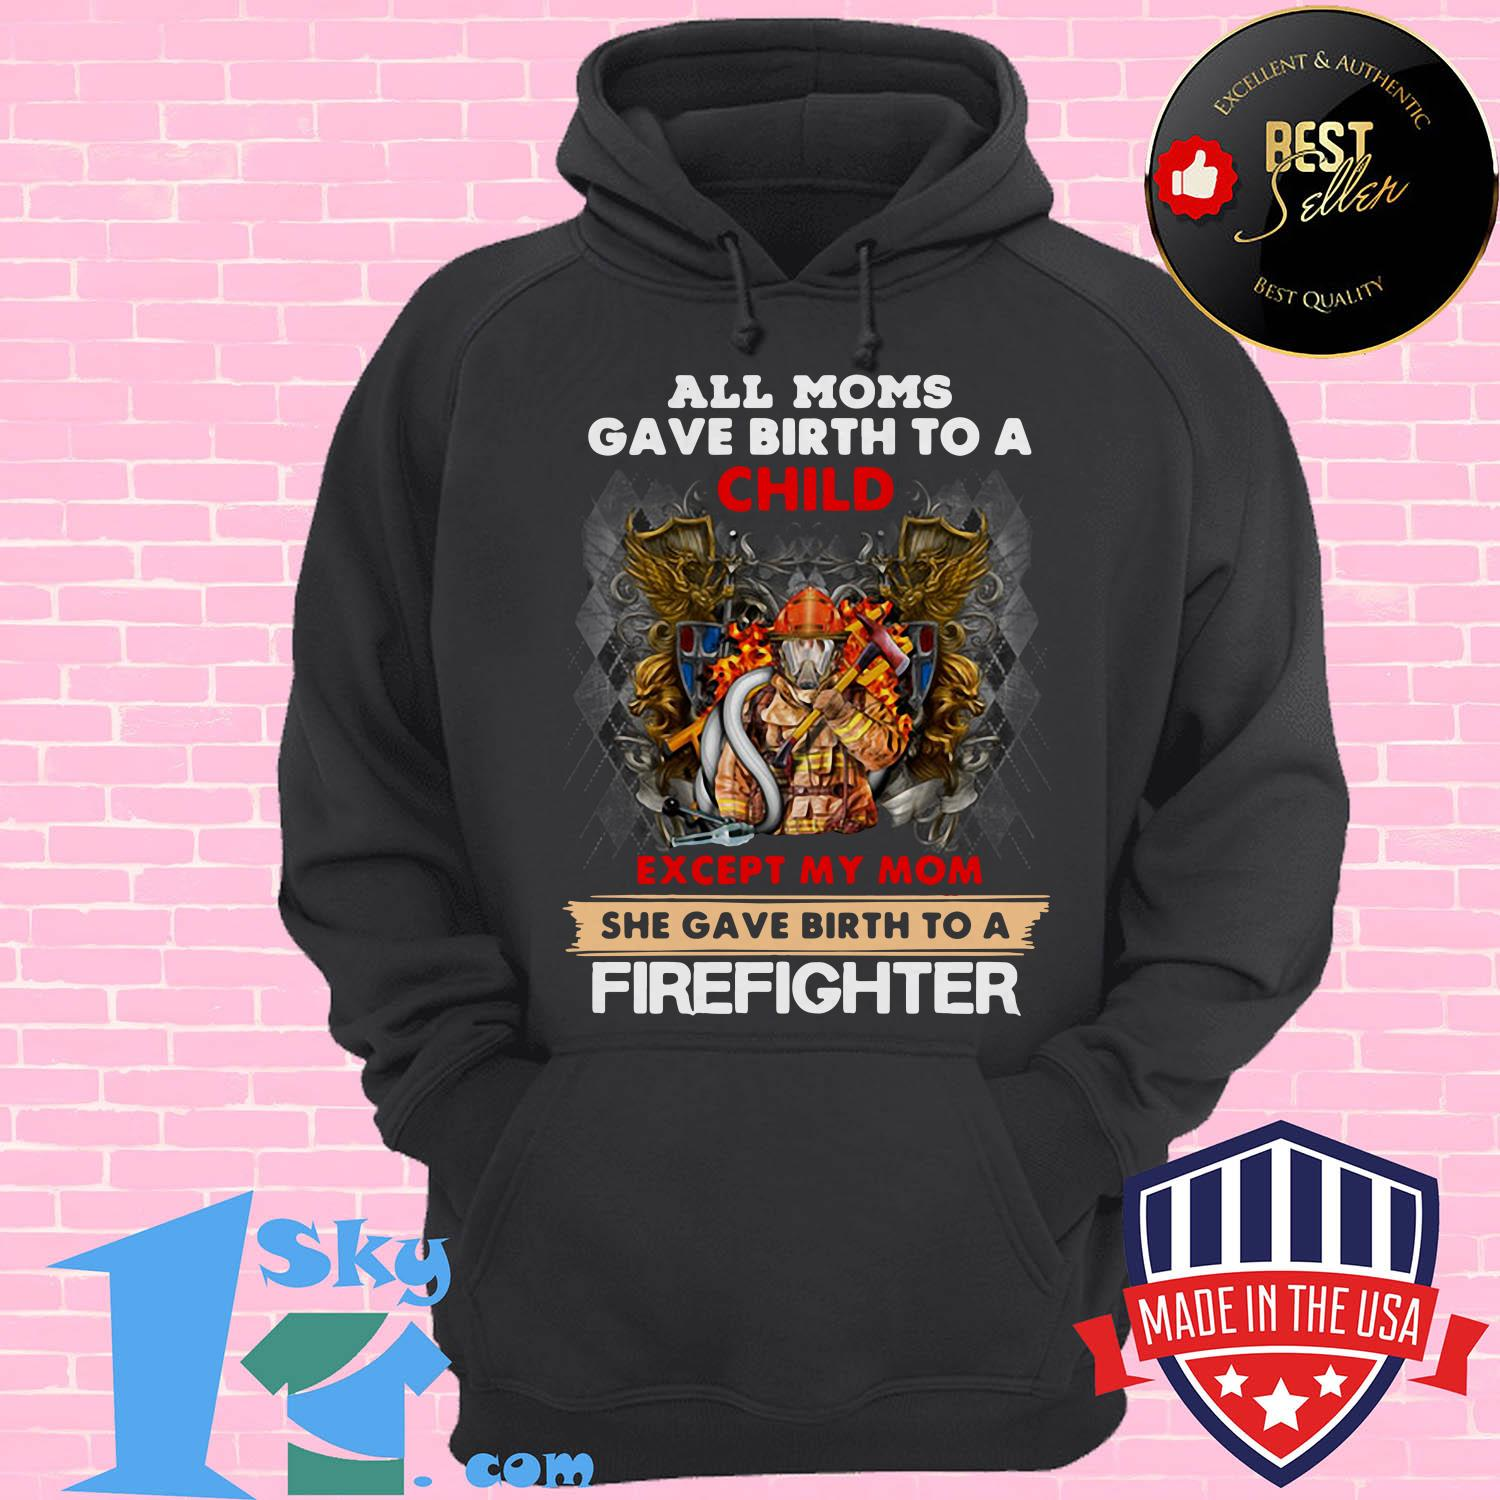 all moms gave birth to a child except my mom she gave birth a firefighter hoodie - All moms gave birth to a child except my mom she gave birth a firefighter shirt